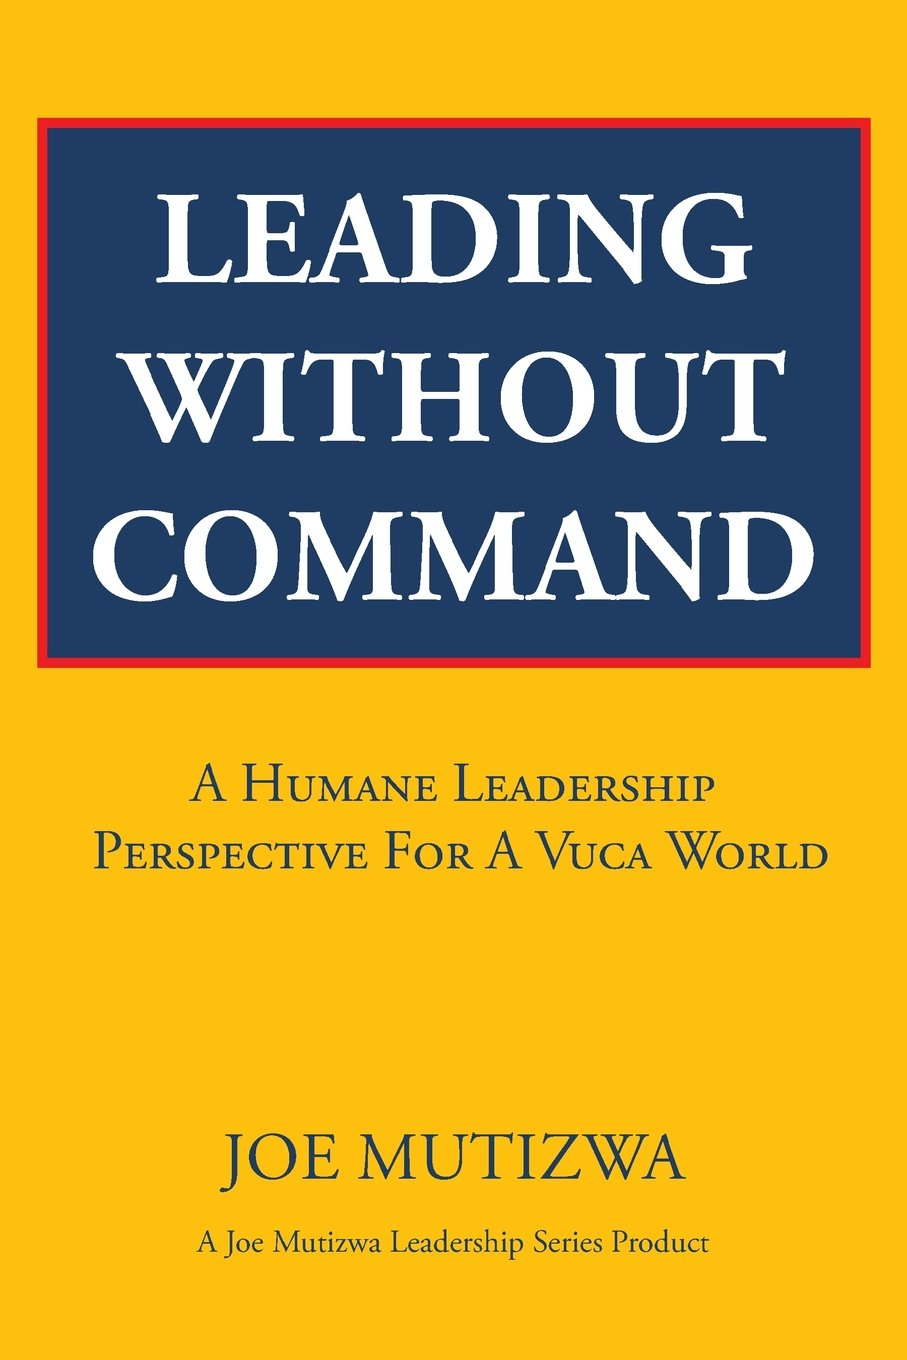 Download Leading Without Command: A Humane Leadership Perspective For A VUCA World PDF